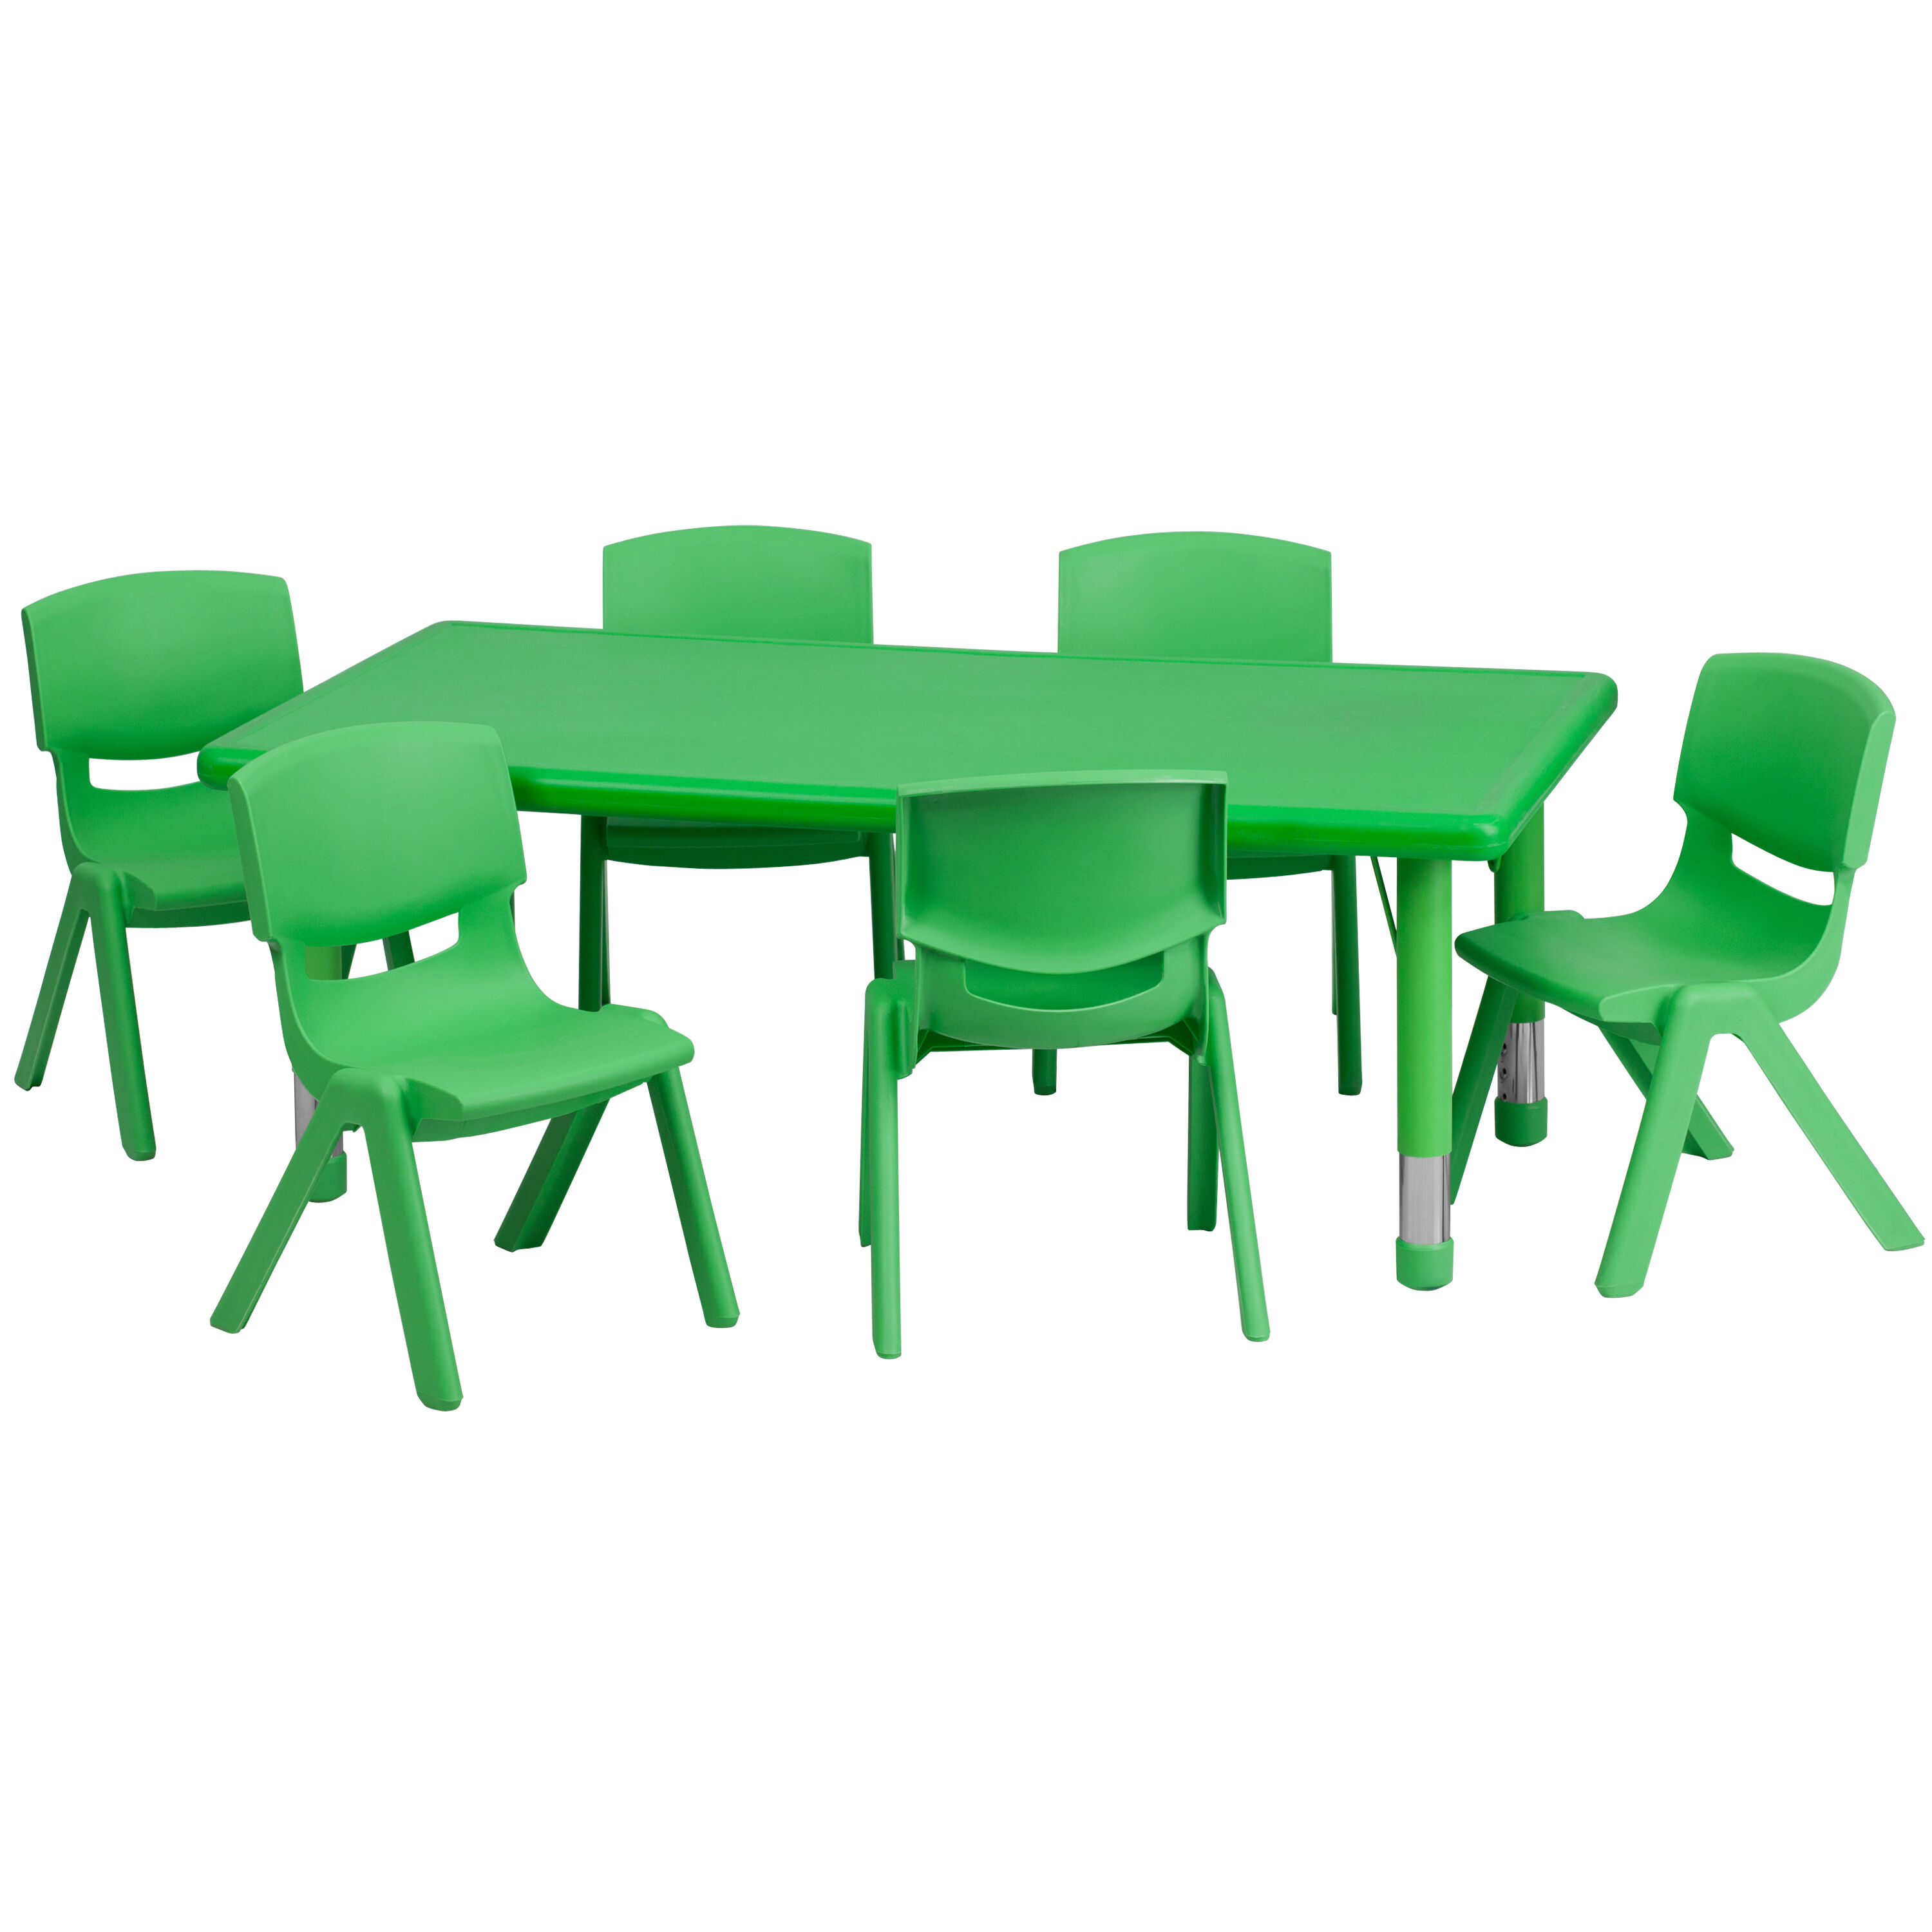 daycare table and chair set covers dublin 24x48 green activity yu ycx 0013 2 rect tbl